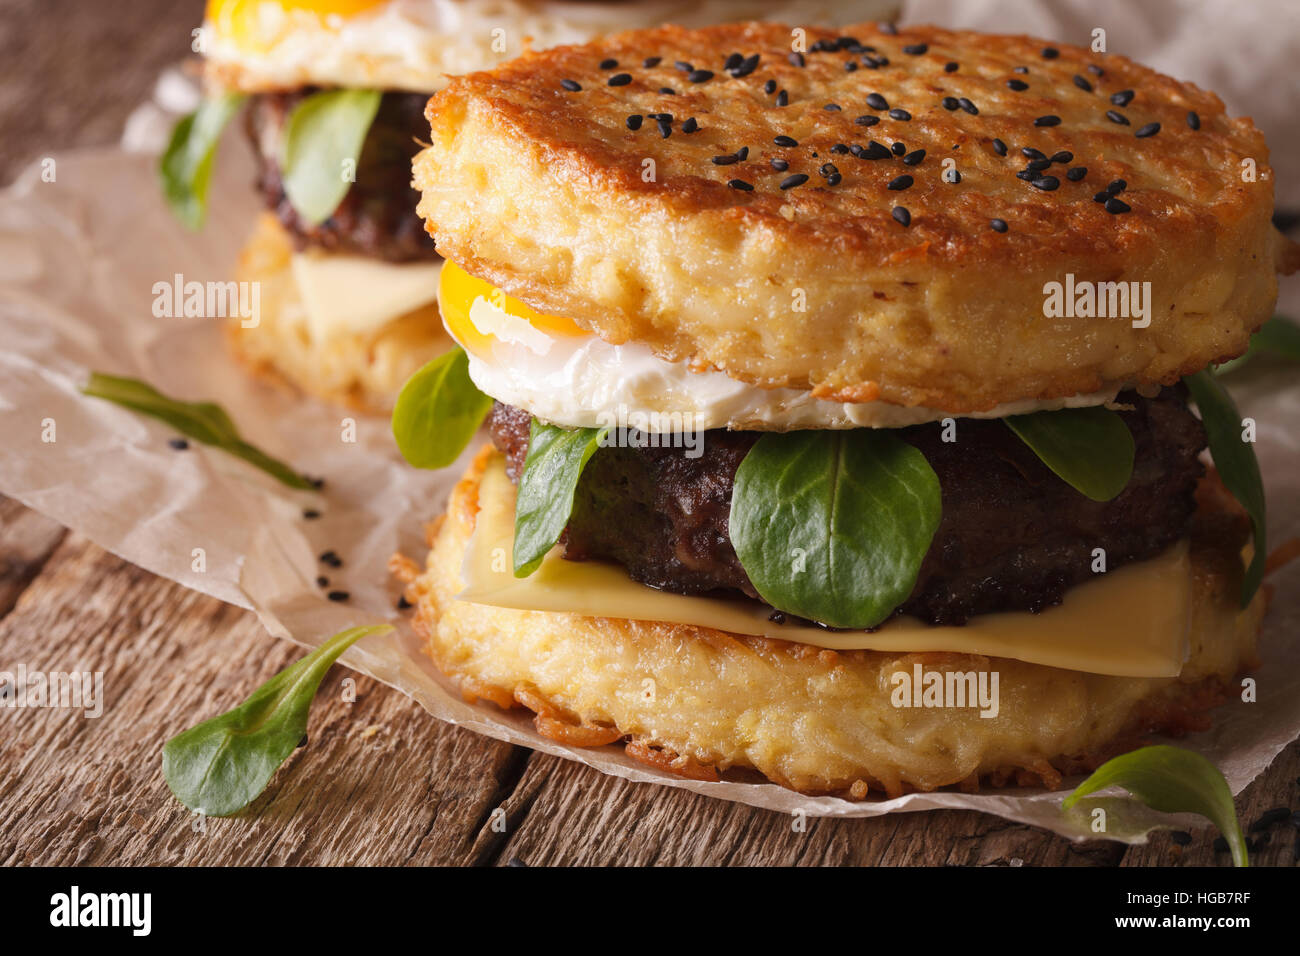 Hot ramen burger macro on a paper on a wooden table. horizontal - Stock Image